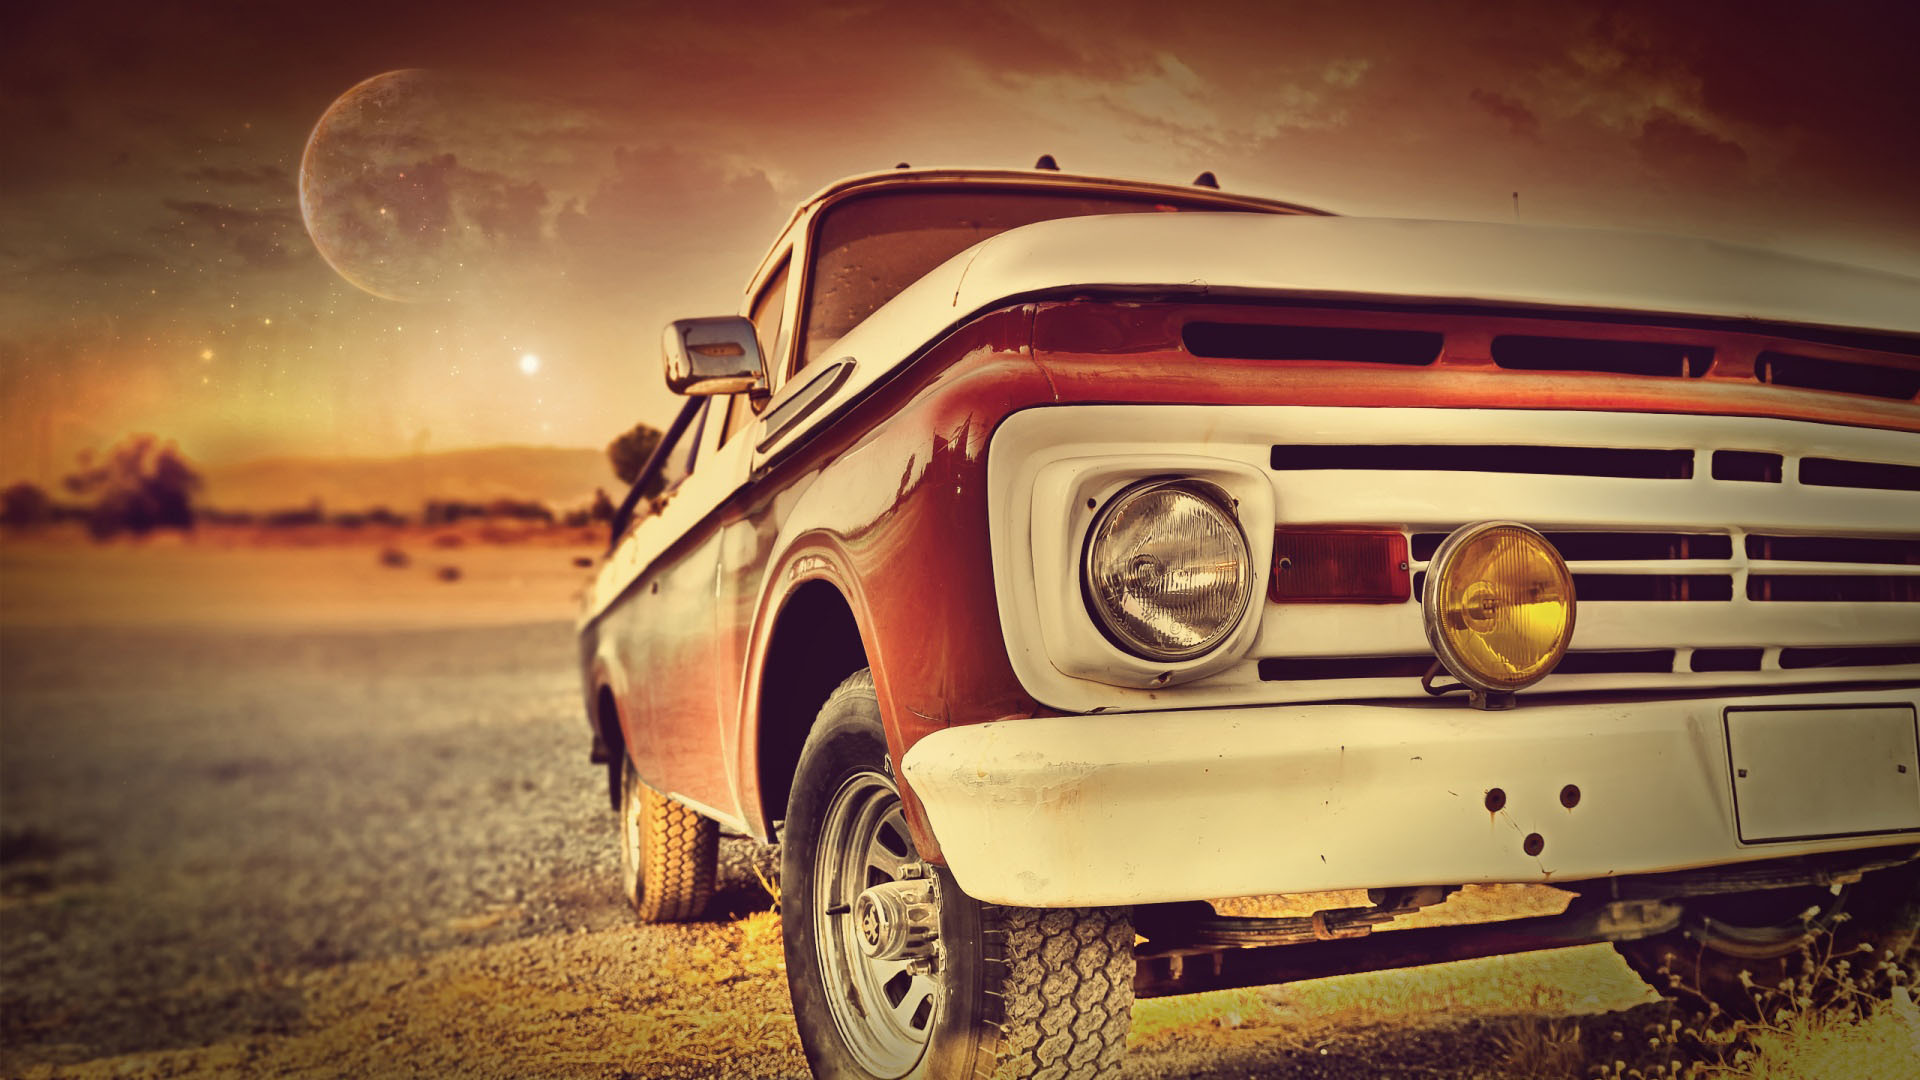 Cute Wallpapers For Girls 7 Year Old Vintage Red Car In The Sunset Hd Wallpaper Old Car